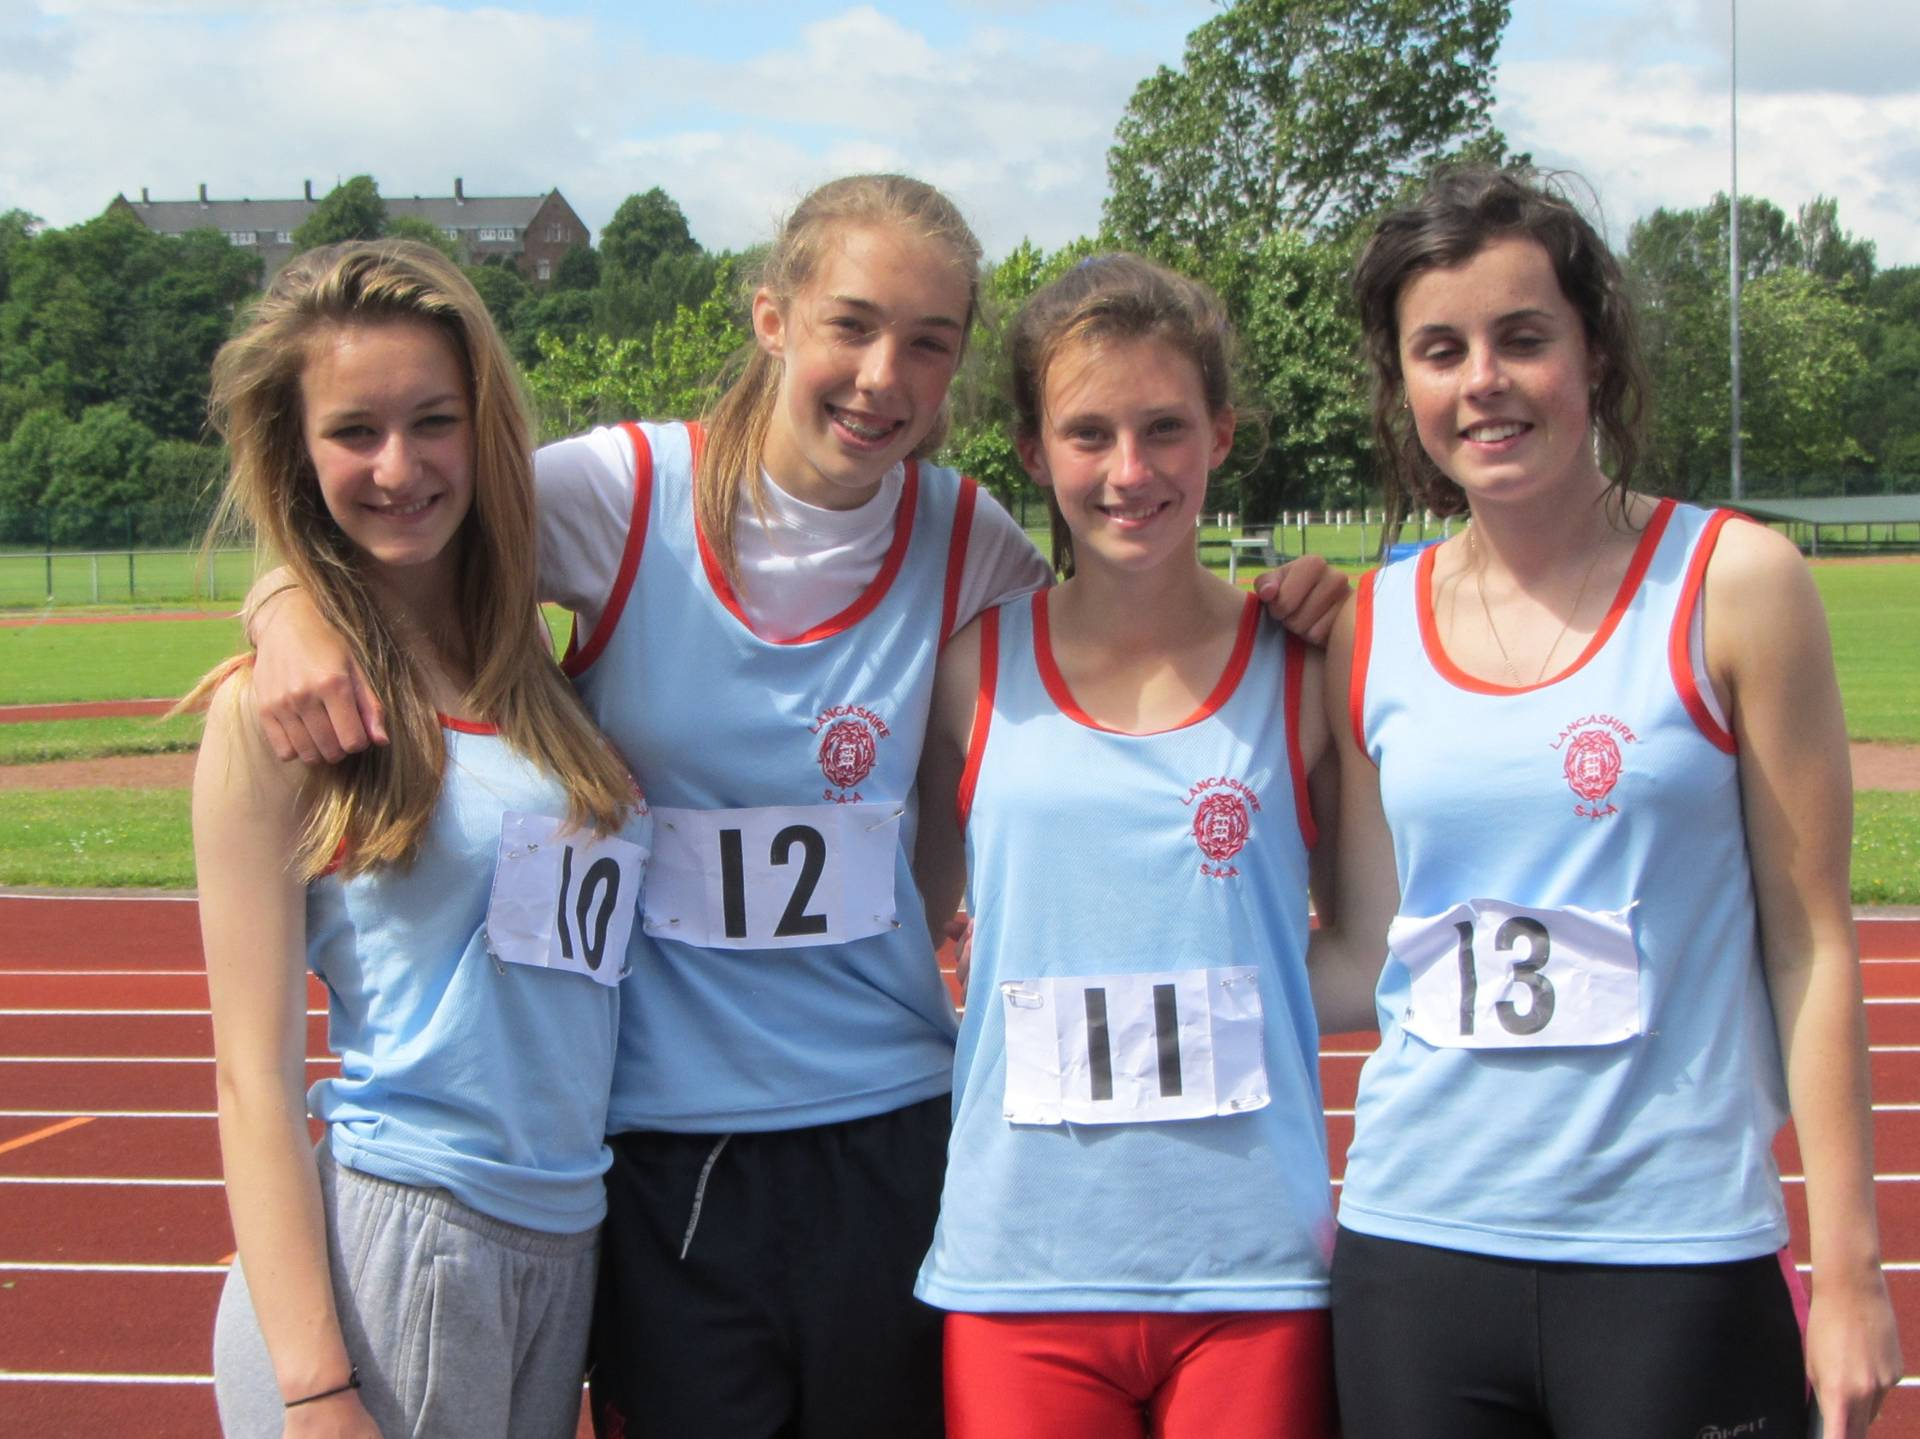 PB's All Over The Place for the Harriers – (at ESAA North West Schools' Combined Events Championships)